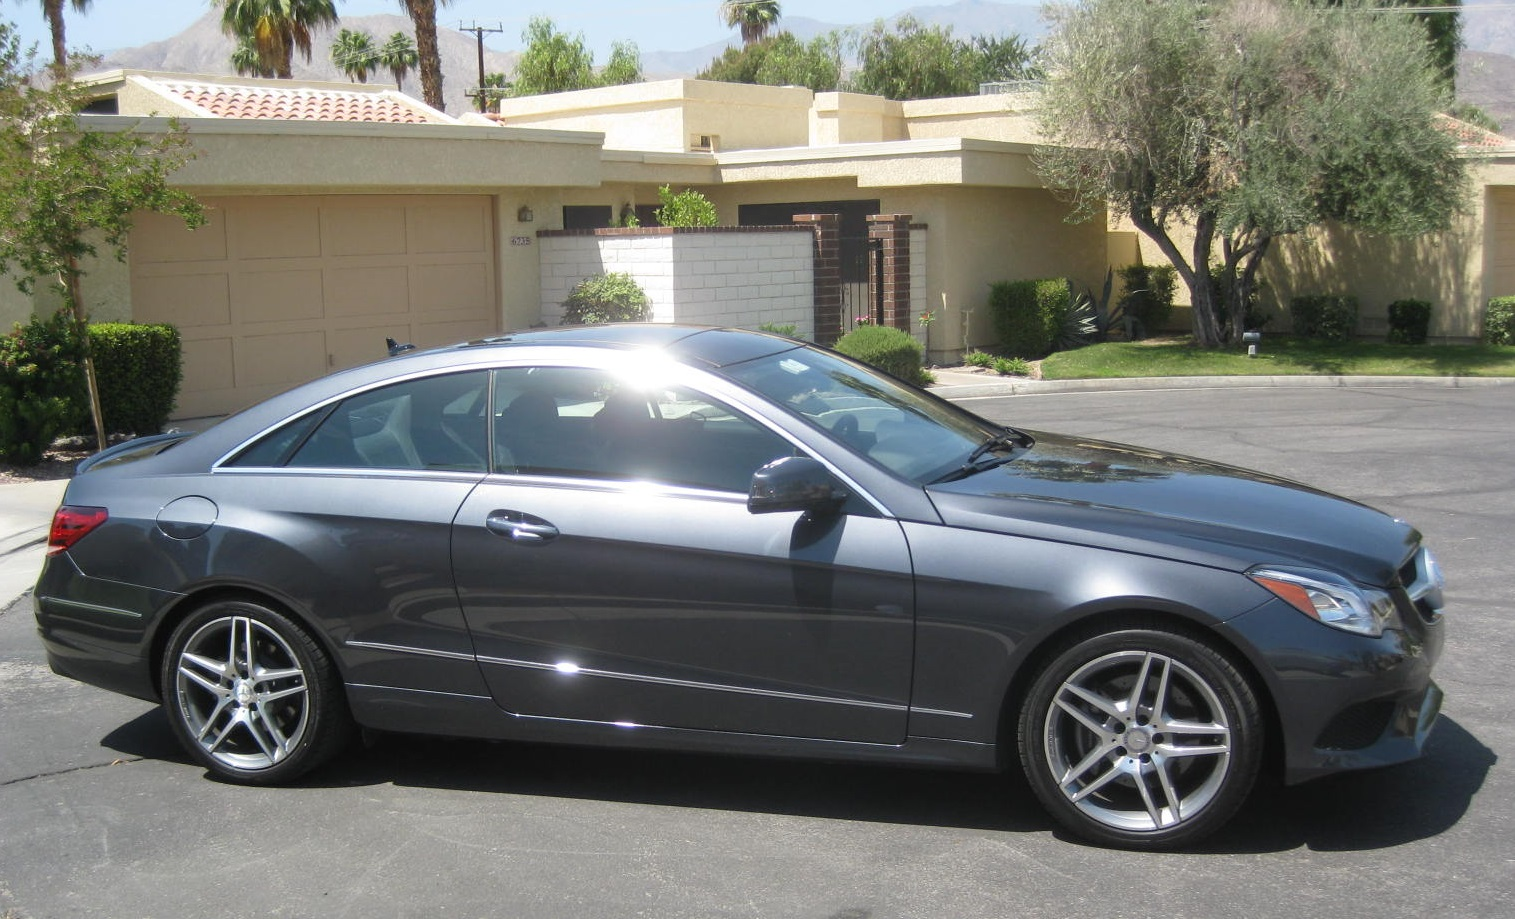 personal luxury pillarless style the 2014 mercedes benz e350 coupe todd bianco 39 s. Black Bedroom Furniture Sets. Home Design Ideas